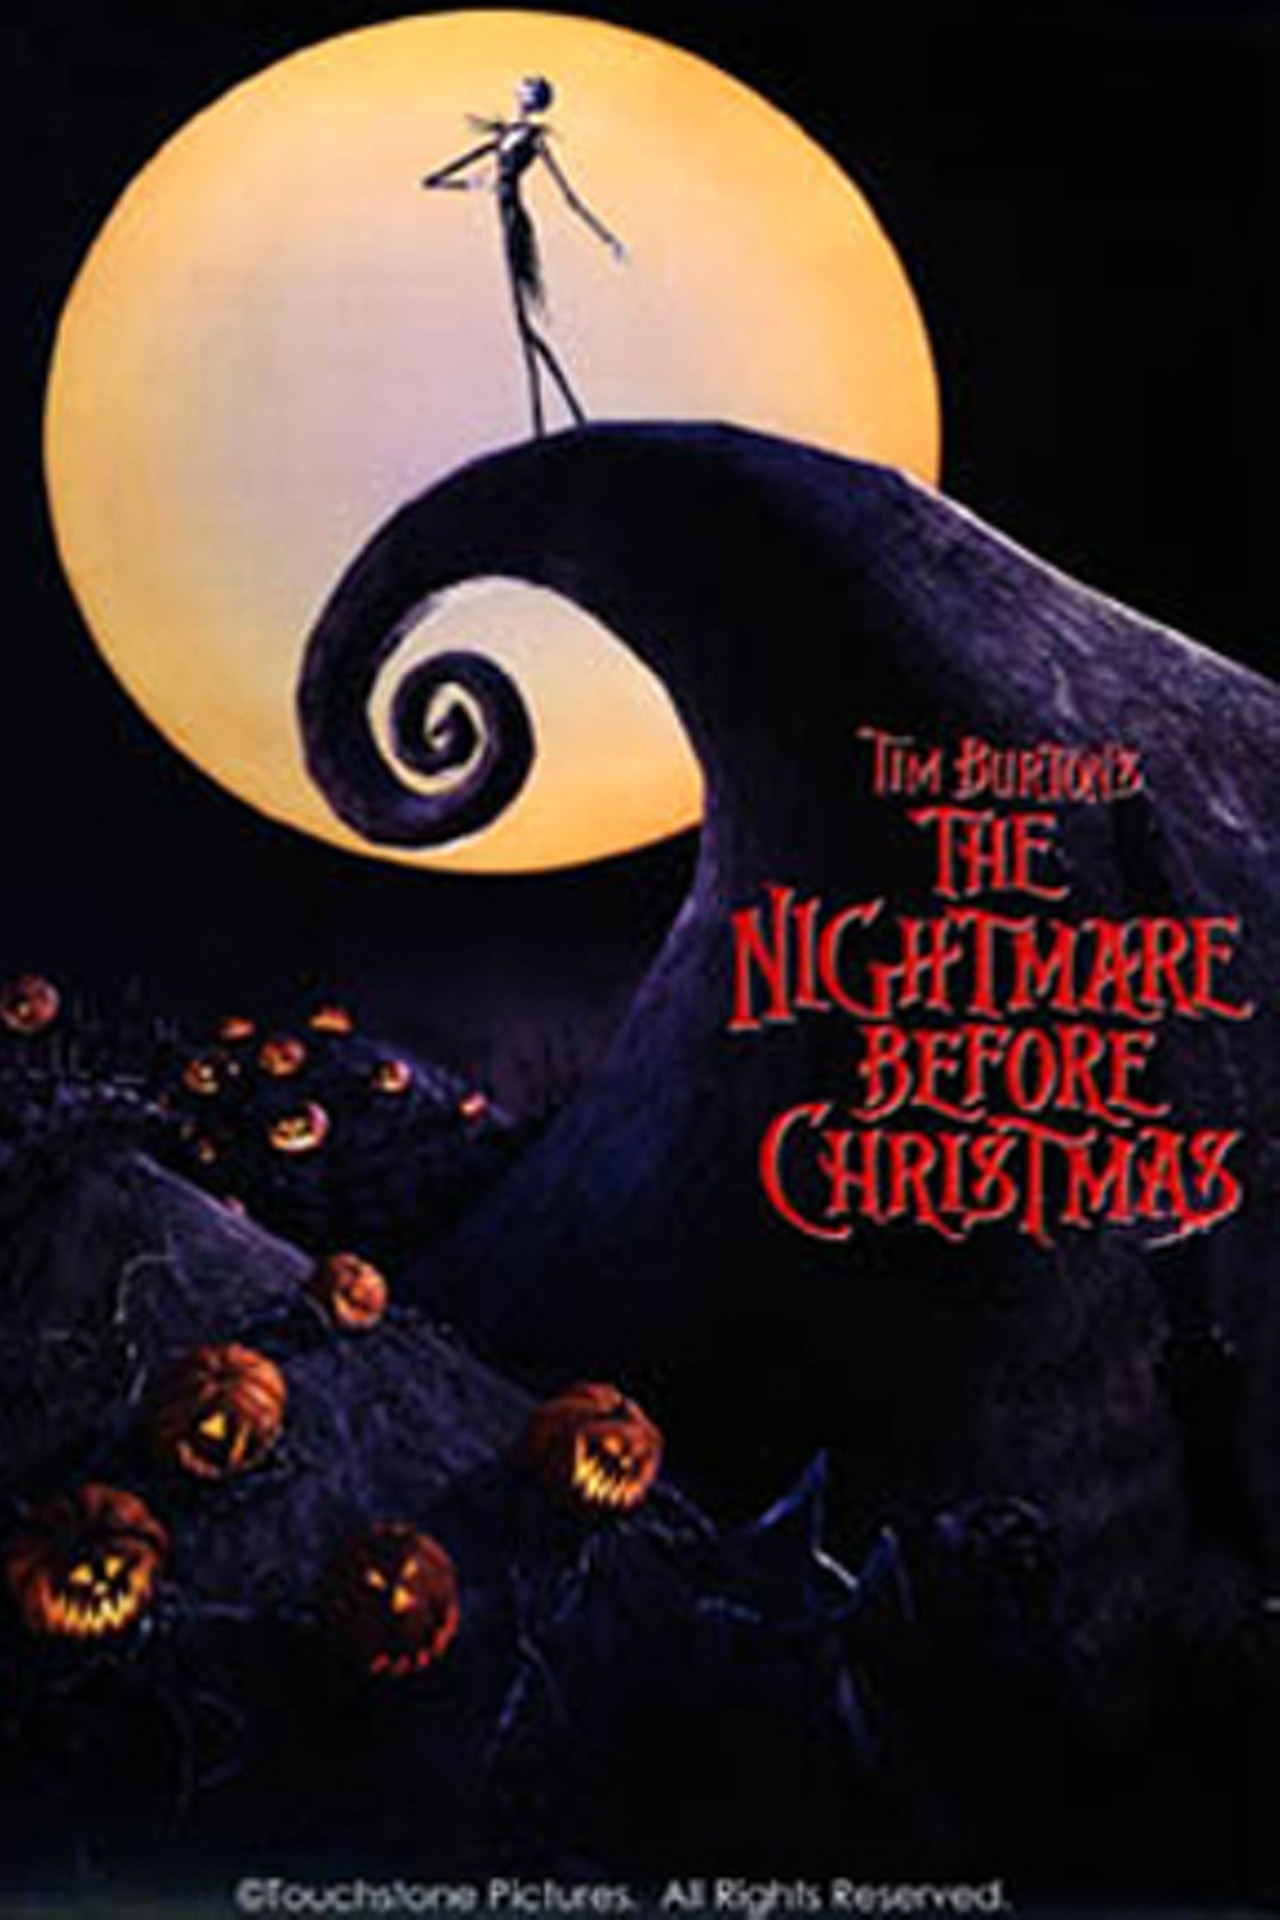 The Nightmare Before Christmas | Tucson Weekly